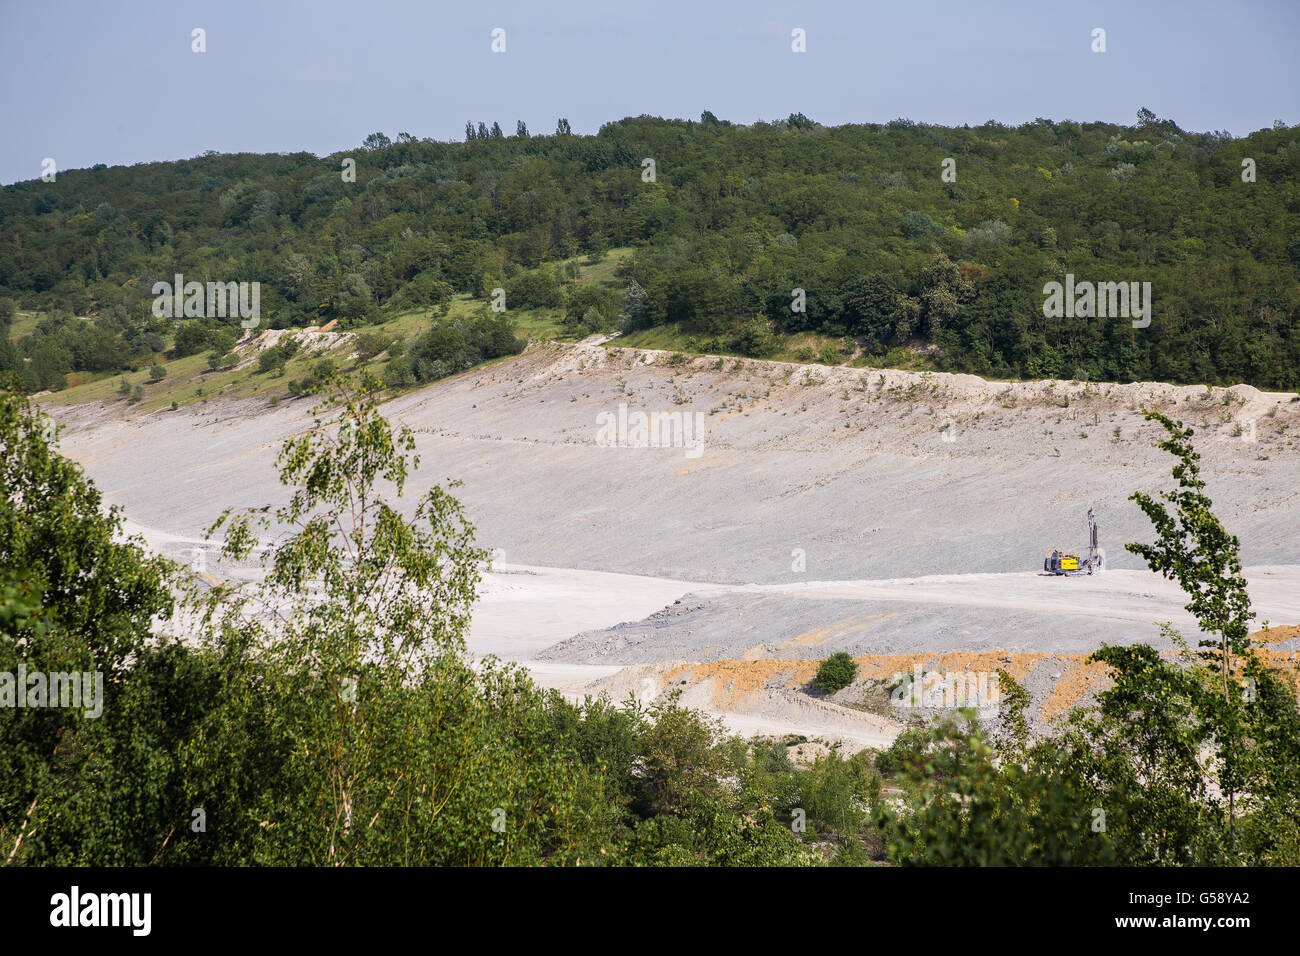 Bottom of surface mining in open mine - Stock Image